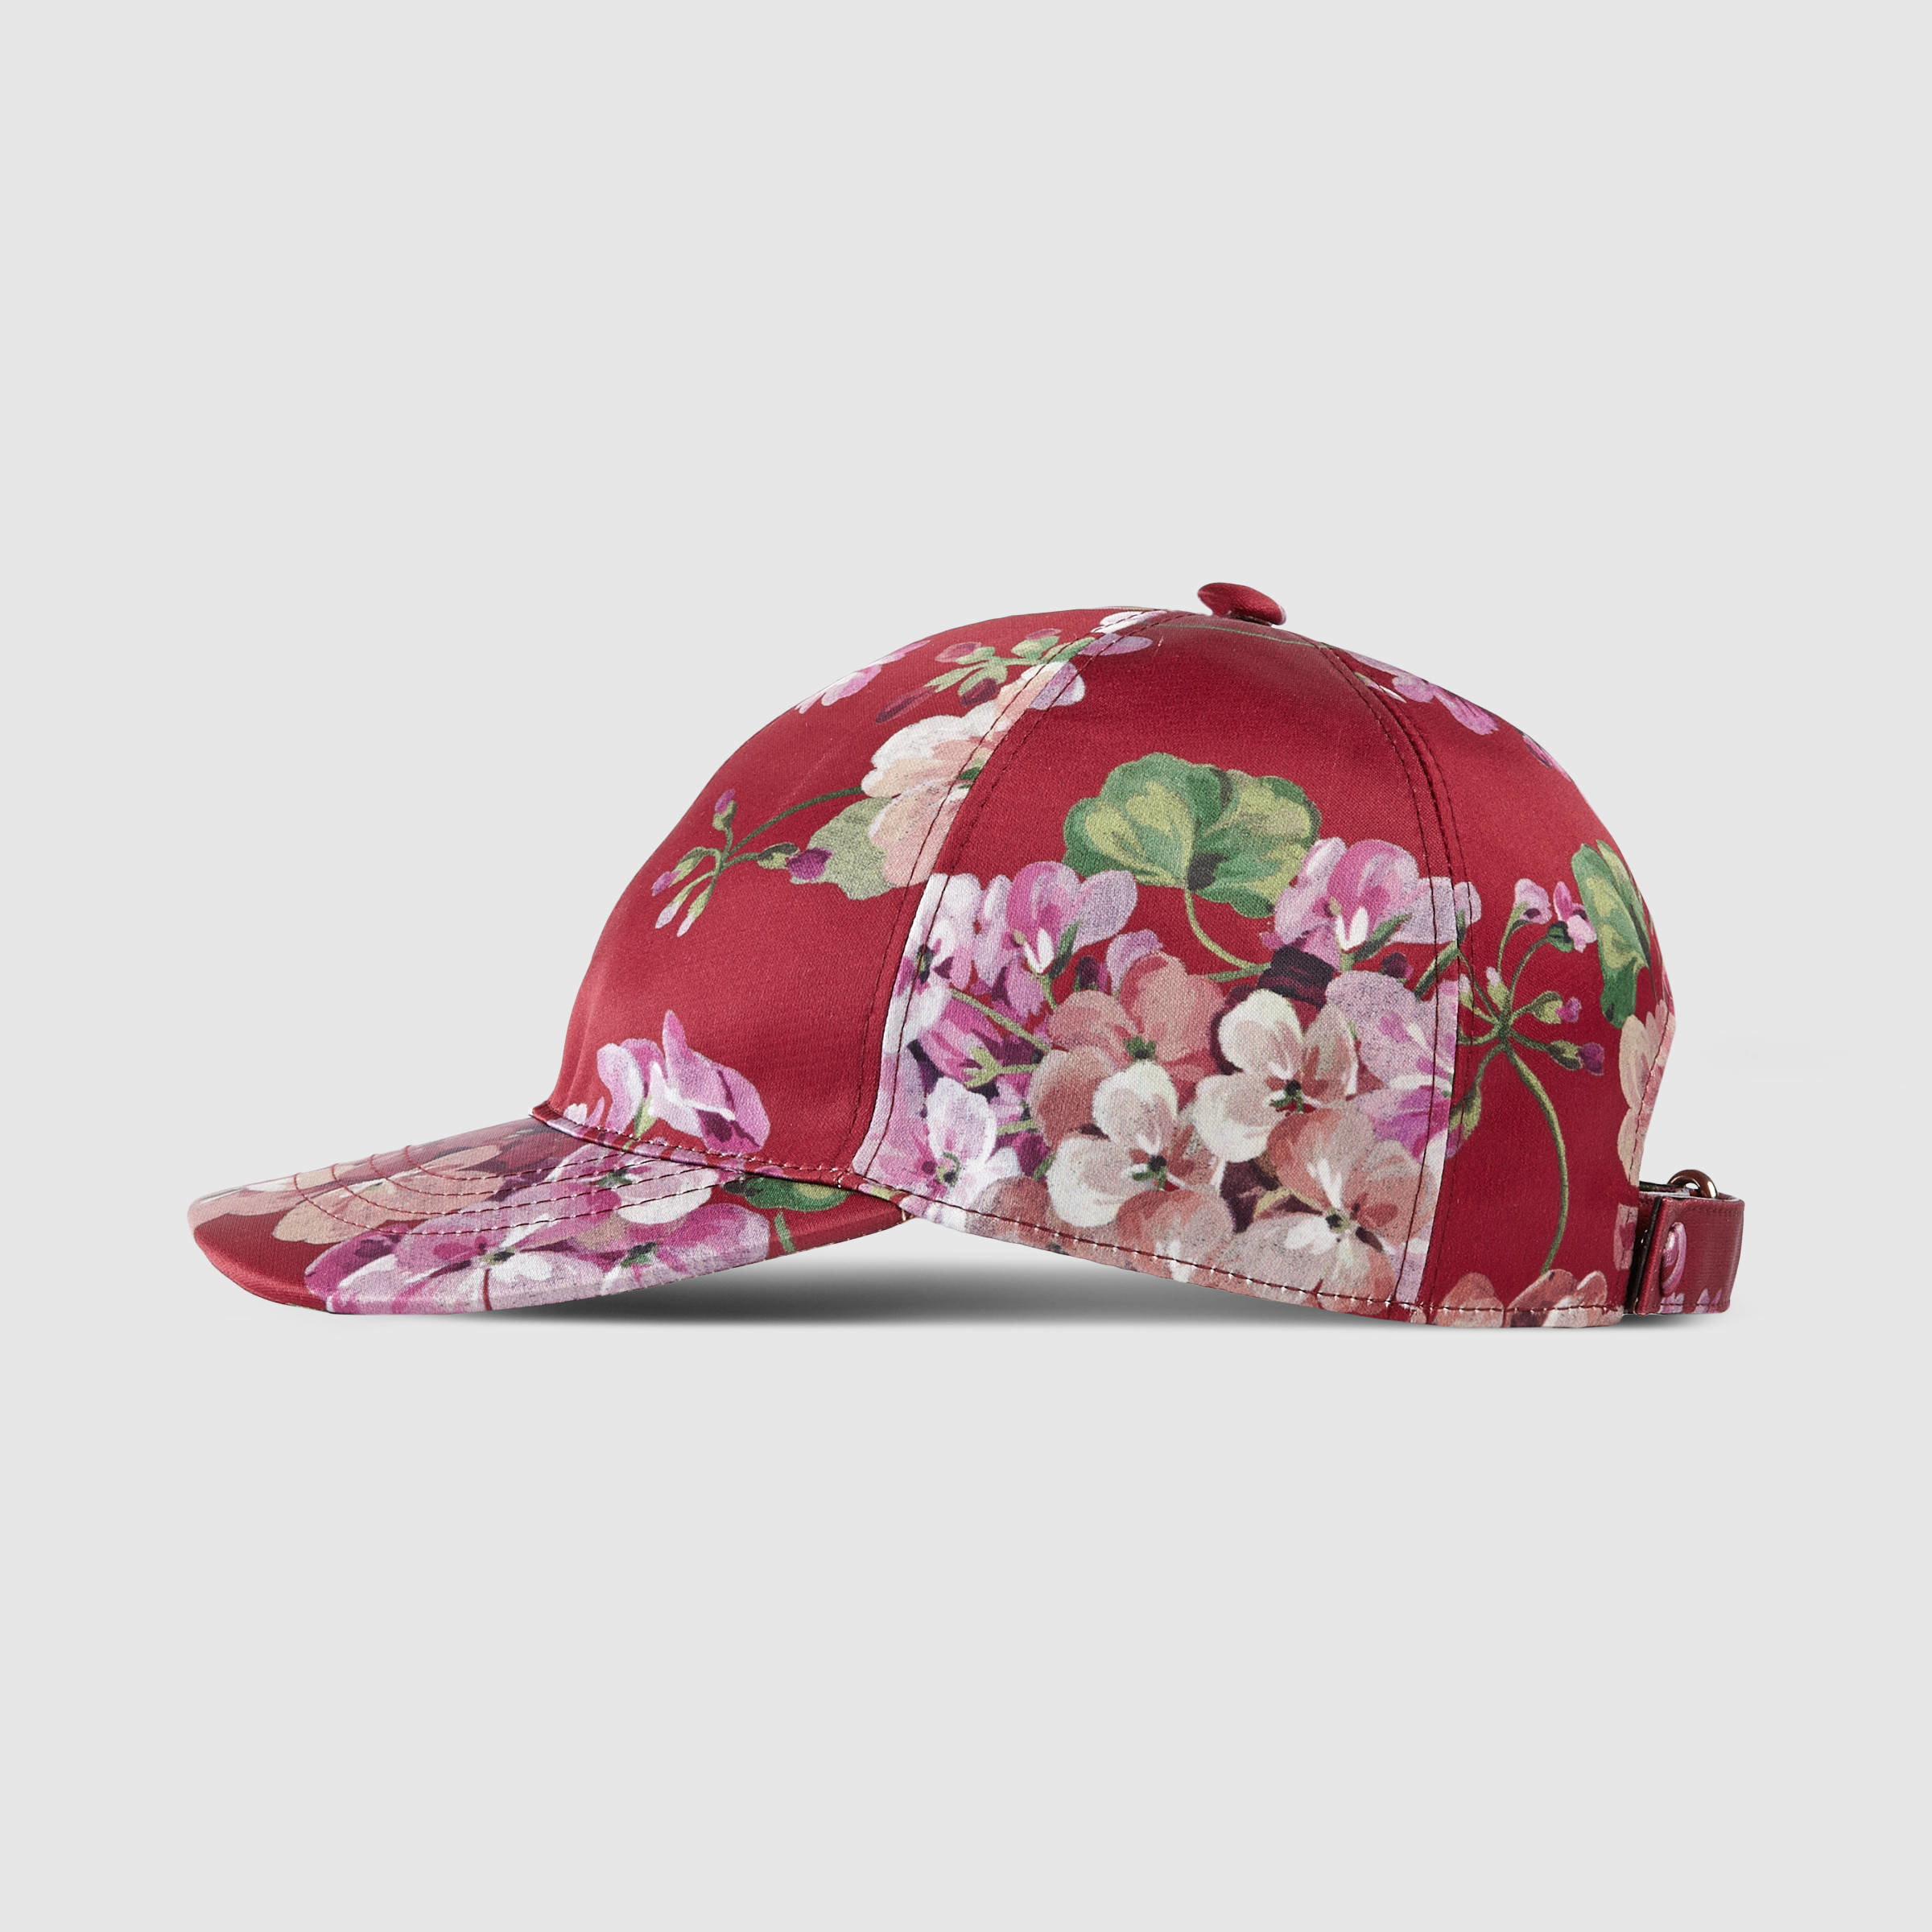 82a10e7bcea Lyst - Gucci Blooms Silk Baseball Hat in Red for Men